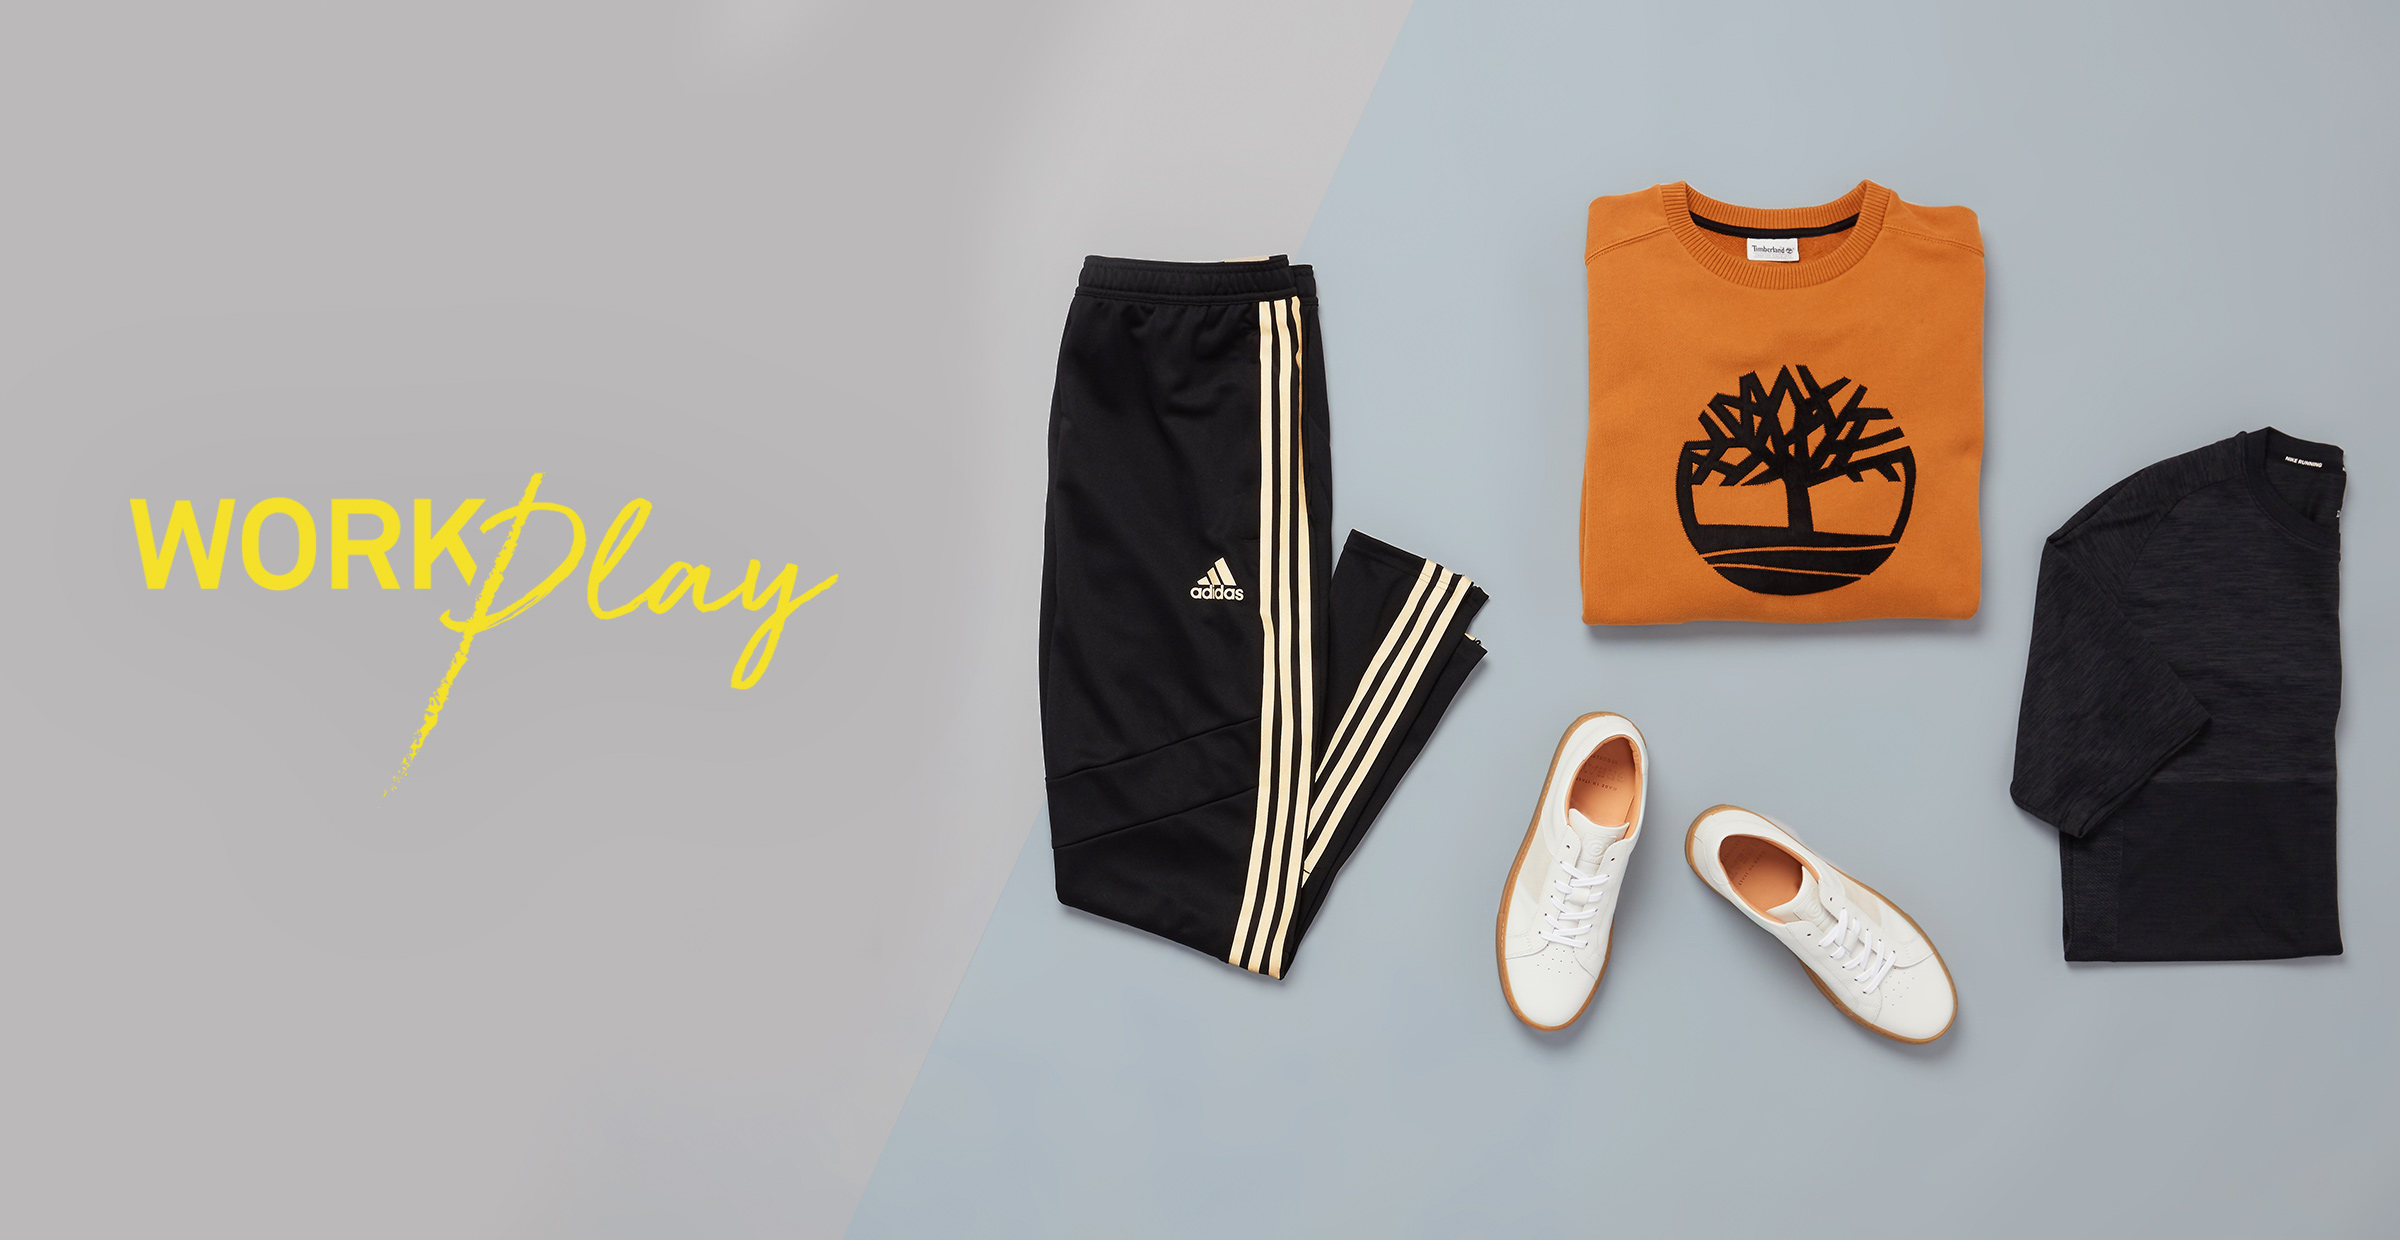 Clothes You Can Workout and Hangout in